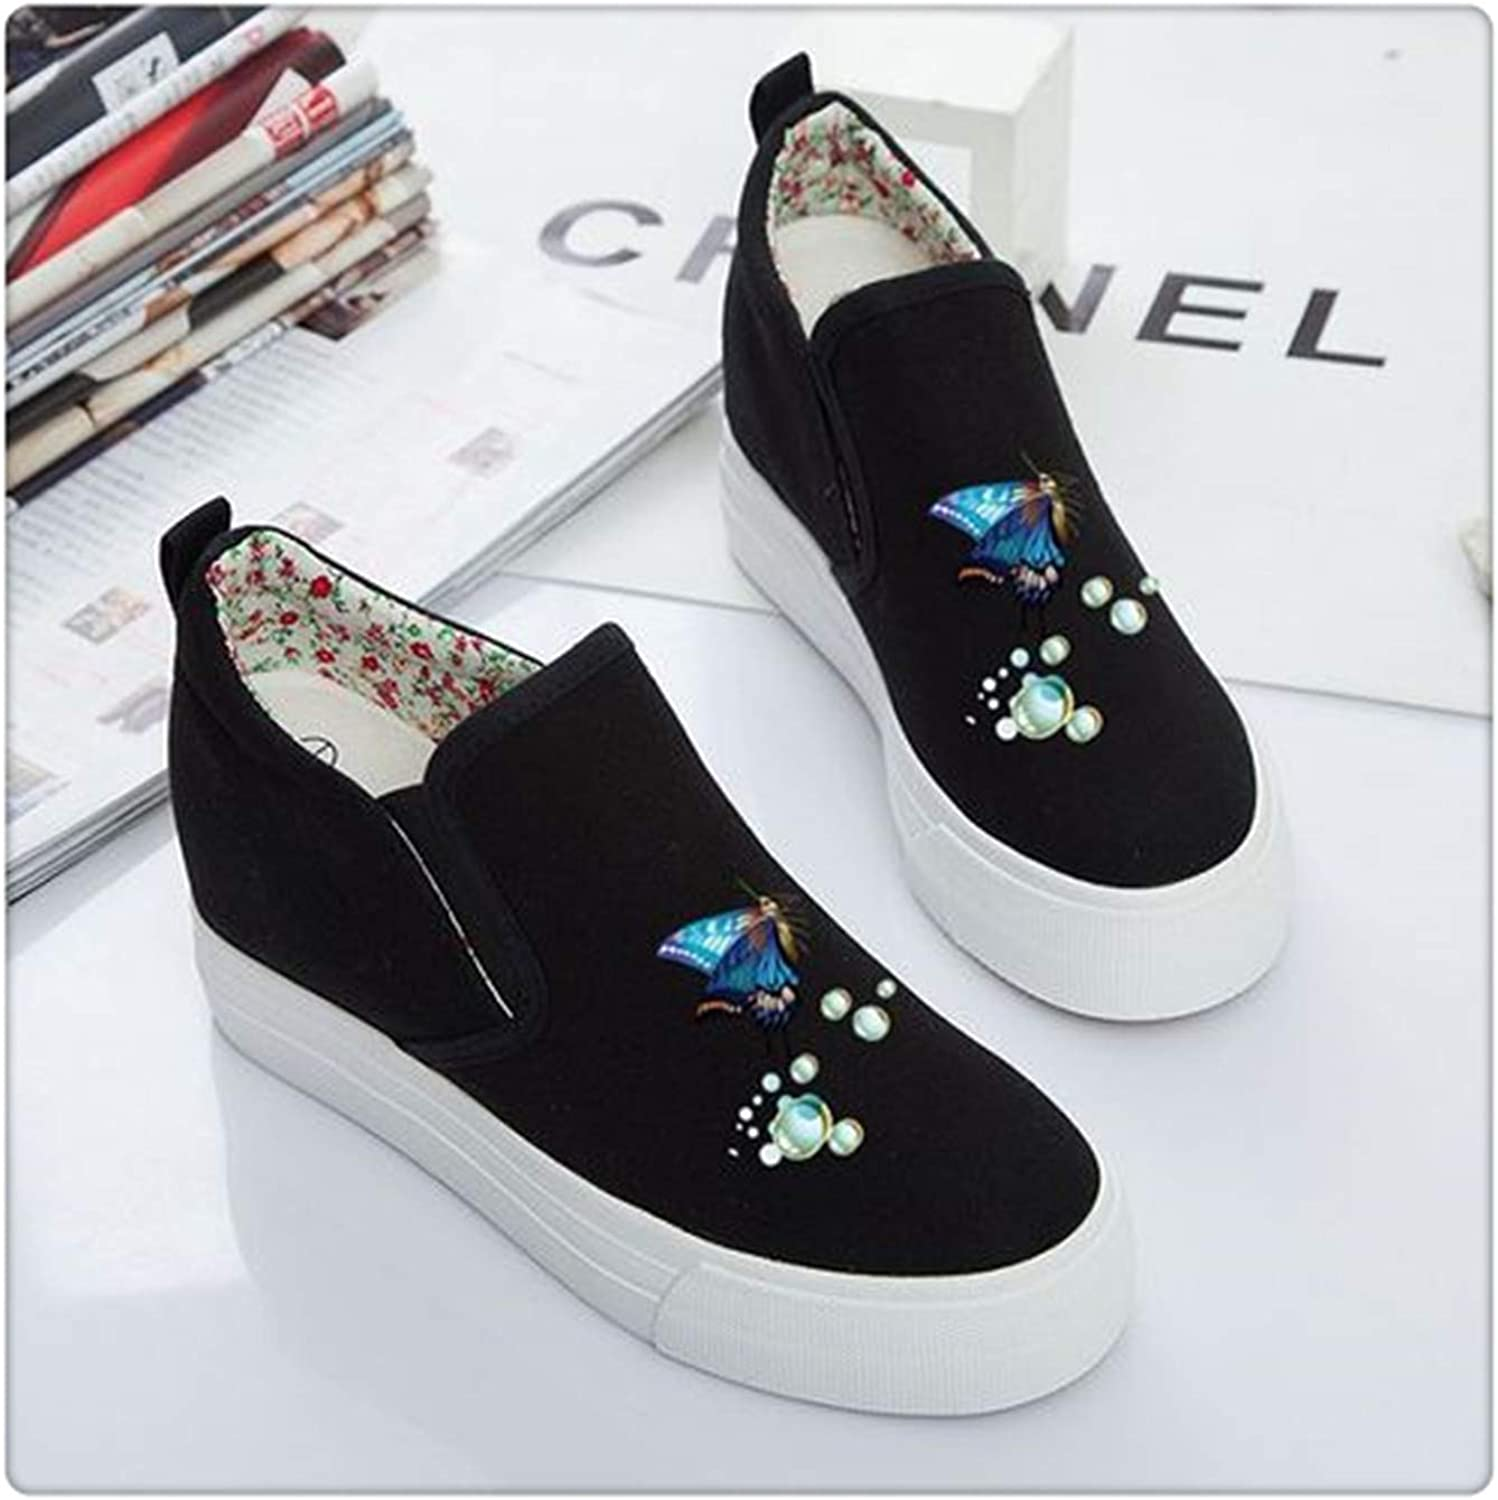 Sweet Women's shoes Platform 2019 Autumn Slip on Canvas shoes Women Loafers Casual Espadrilles White Black Creepers Black Butterfly 4.5